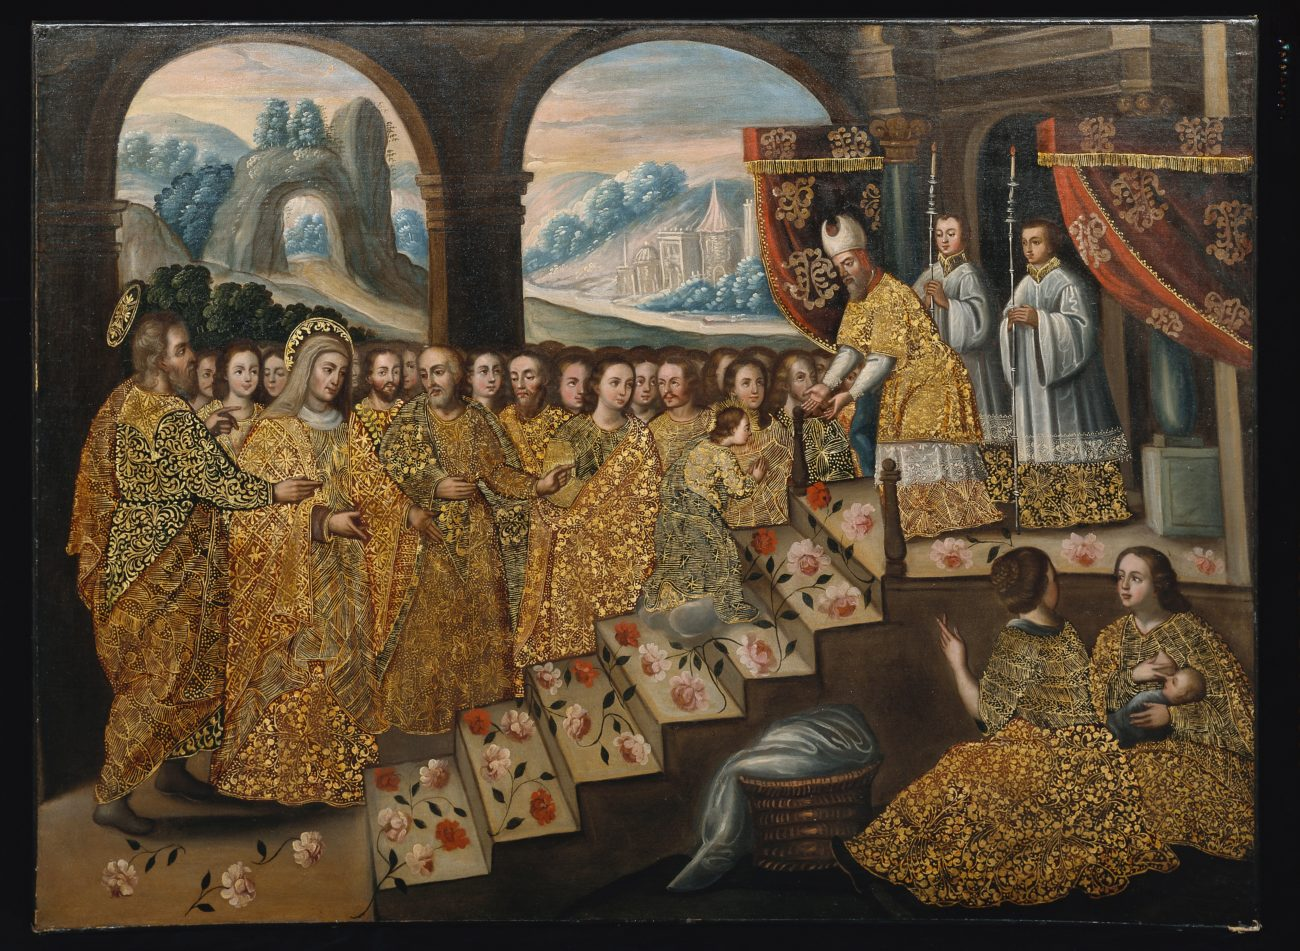 a large crowd dressed in gold embellished clothing gather around an altar where a priest-like figure and two altar boys stand. a smaller female figure climbs rose covered stairs to meet the priest whose arms are outstretched.